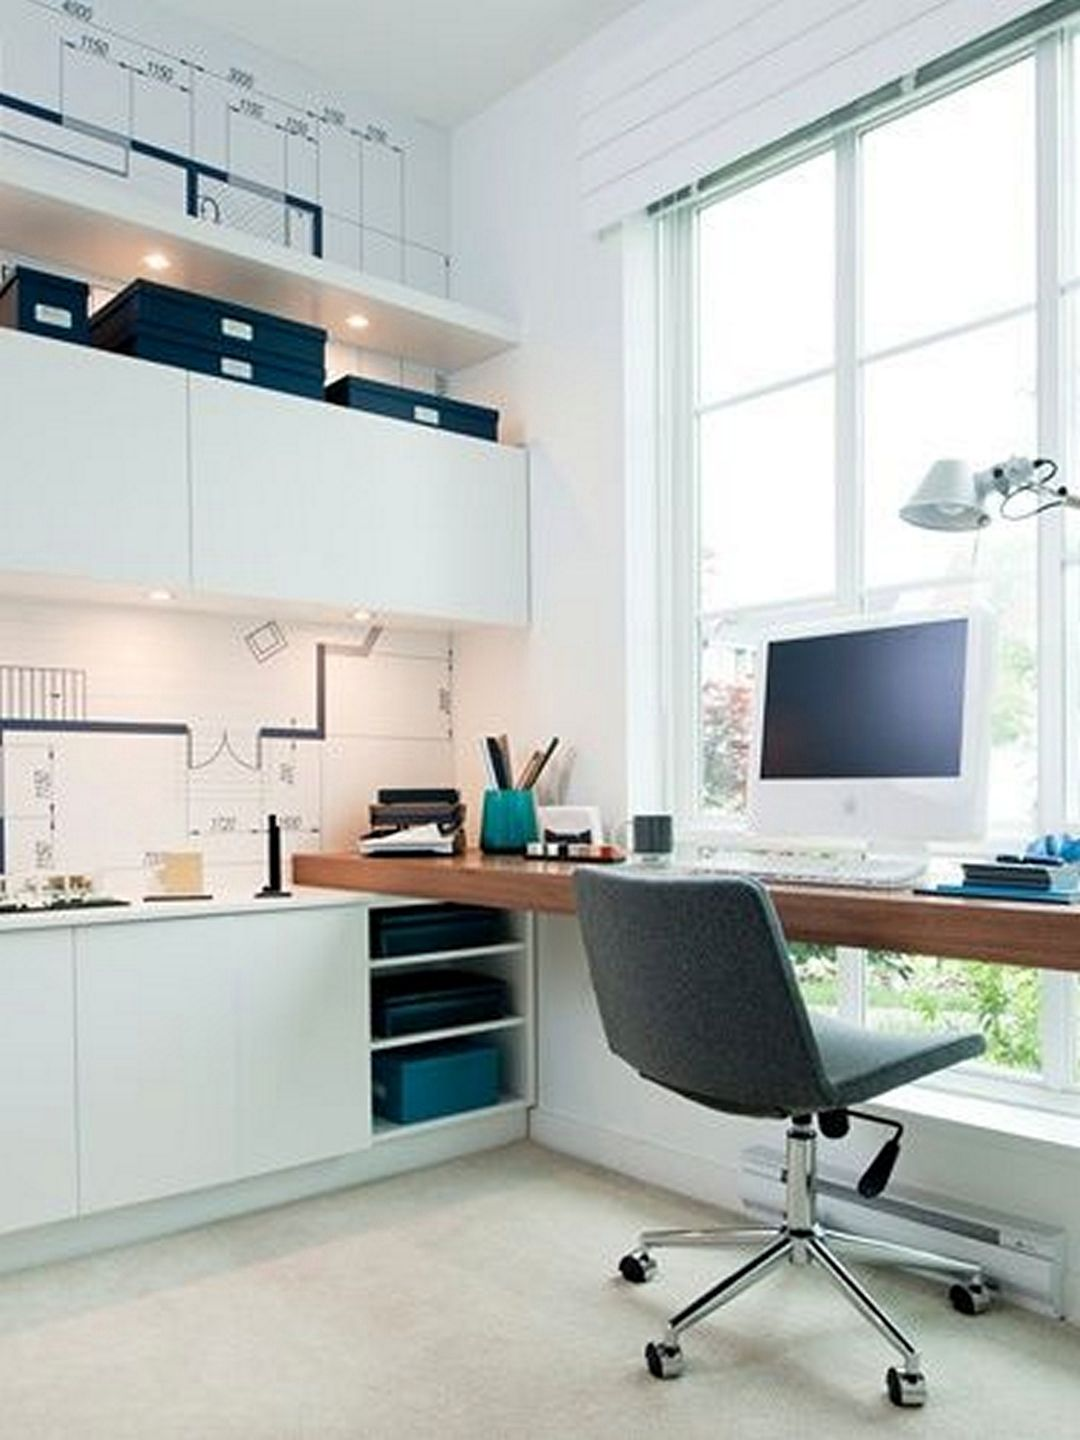 Basement Office Design Property 170 beautiful home office design ideas | office designs, closet